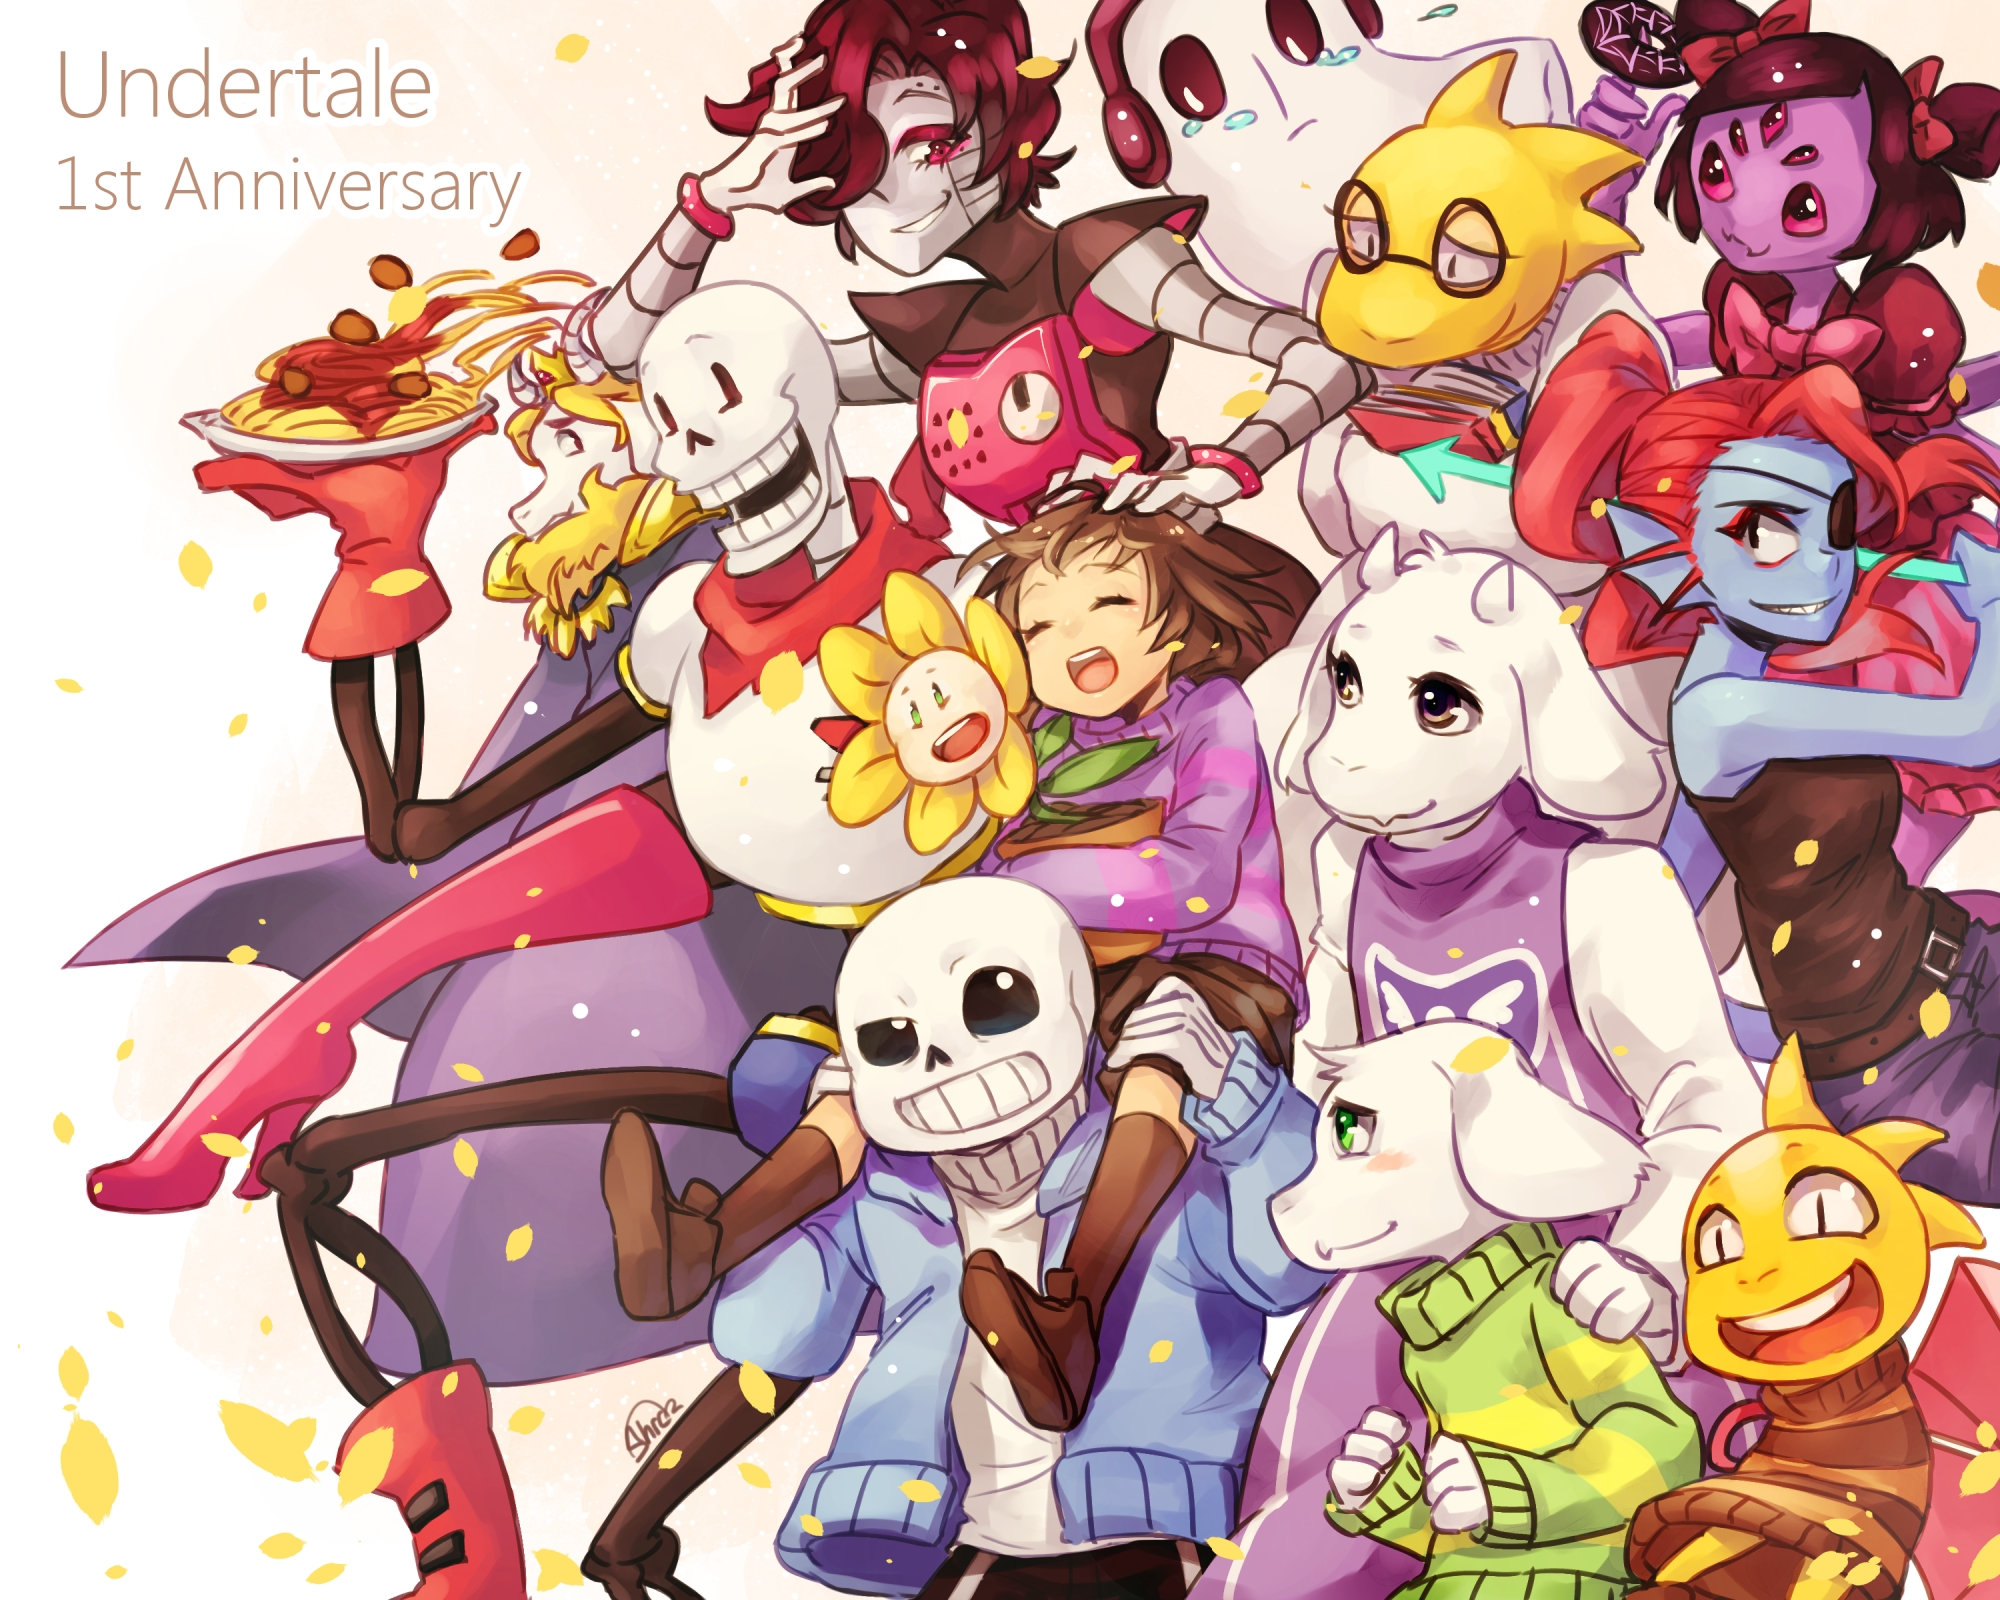 undertale anime